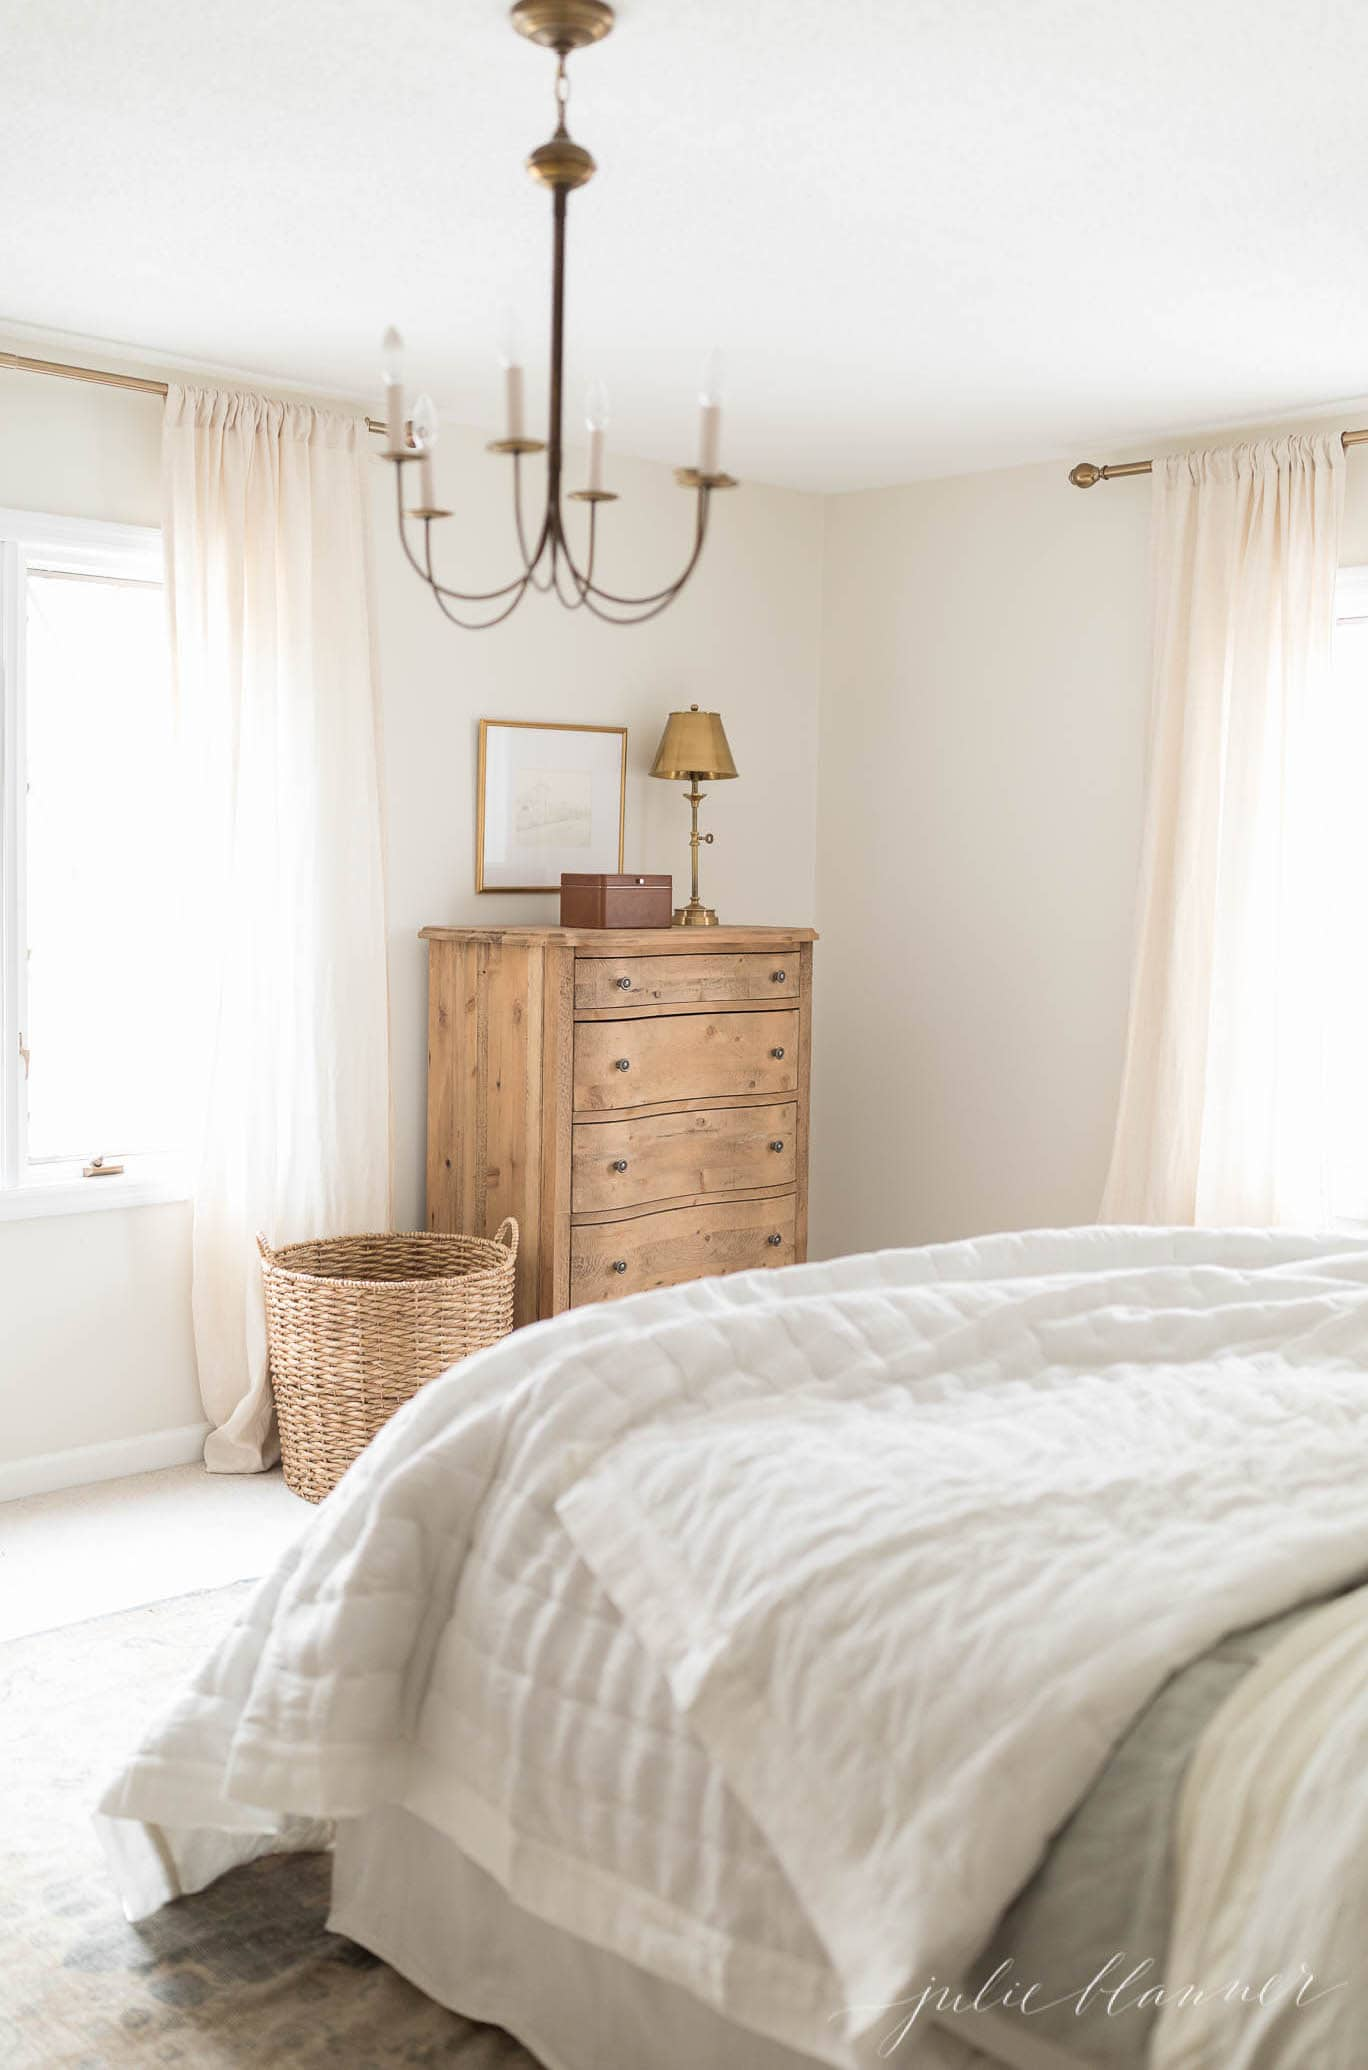 A white bedroom with a large pretty basket for a storage container that doubles as decor.